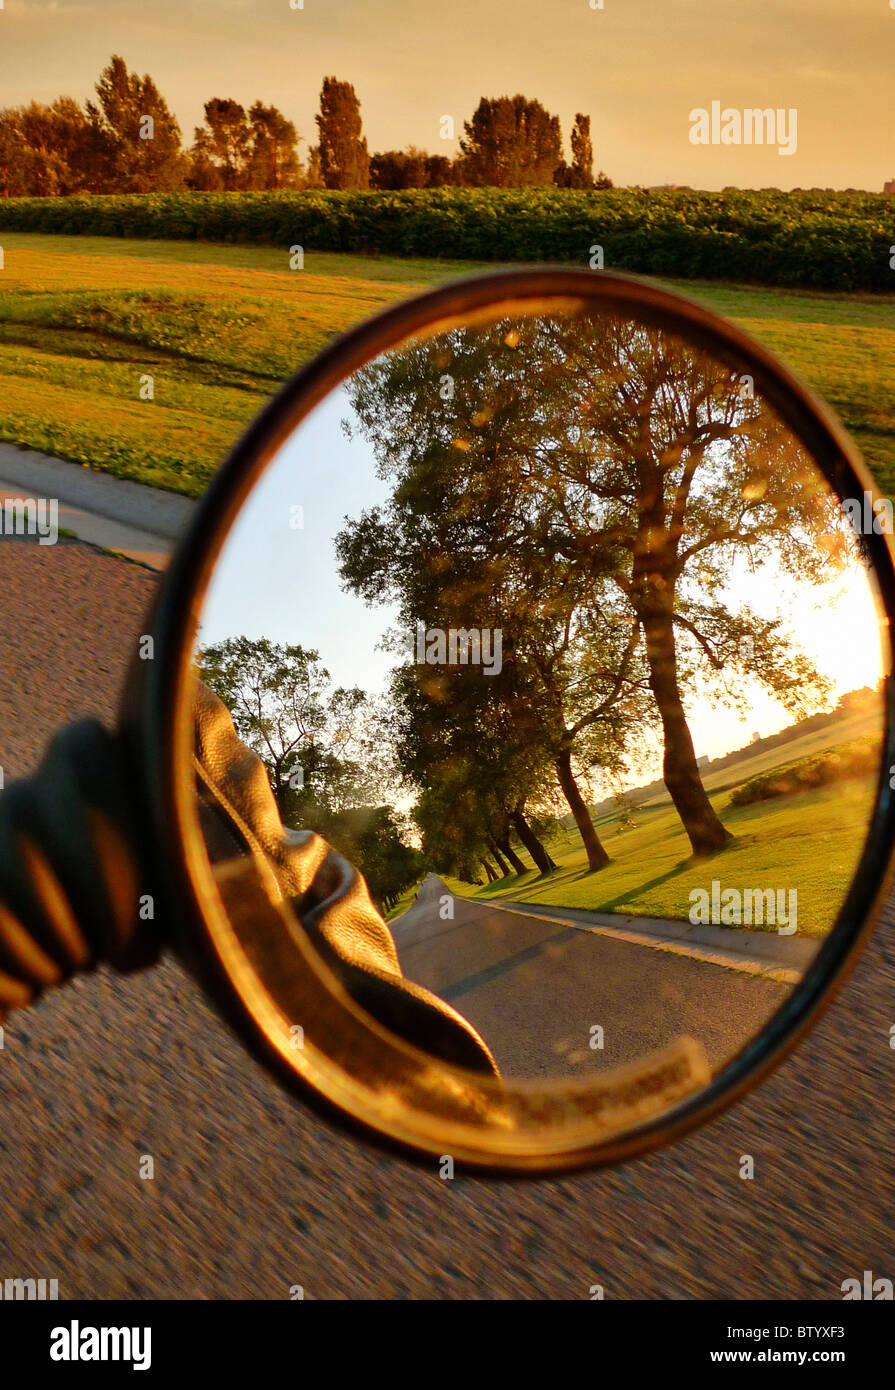 Rear view mirror of Italian scooter riding on country road. - Stock Image